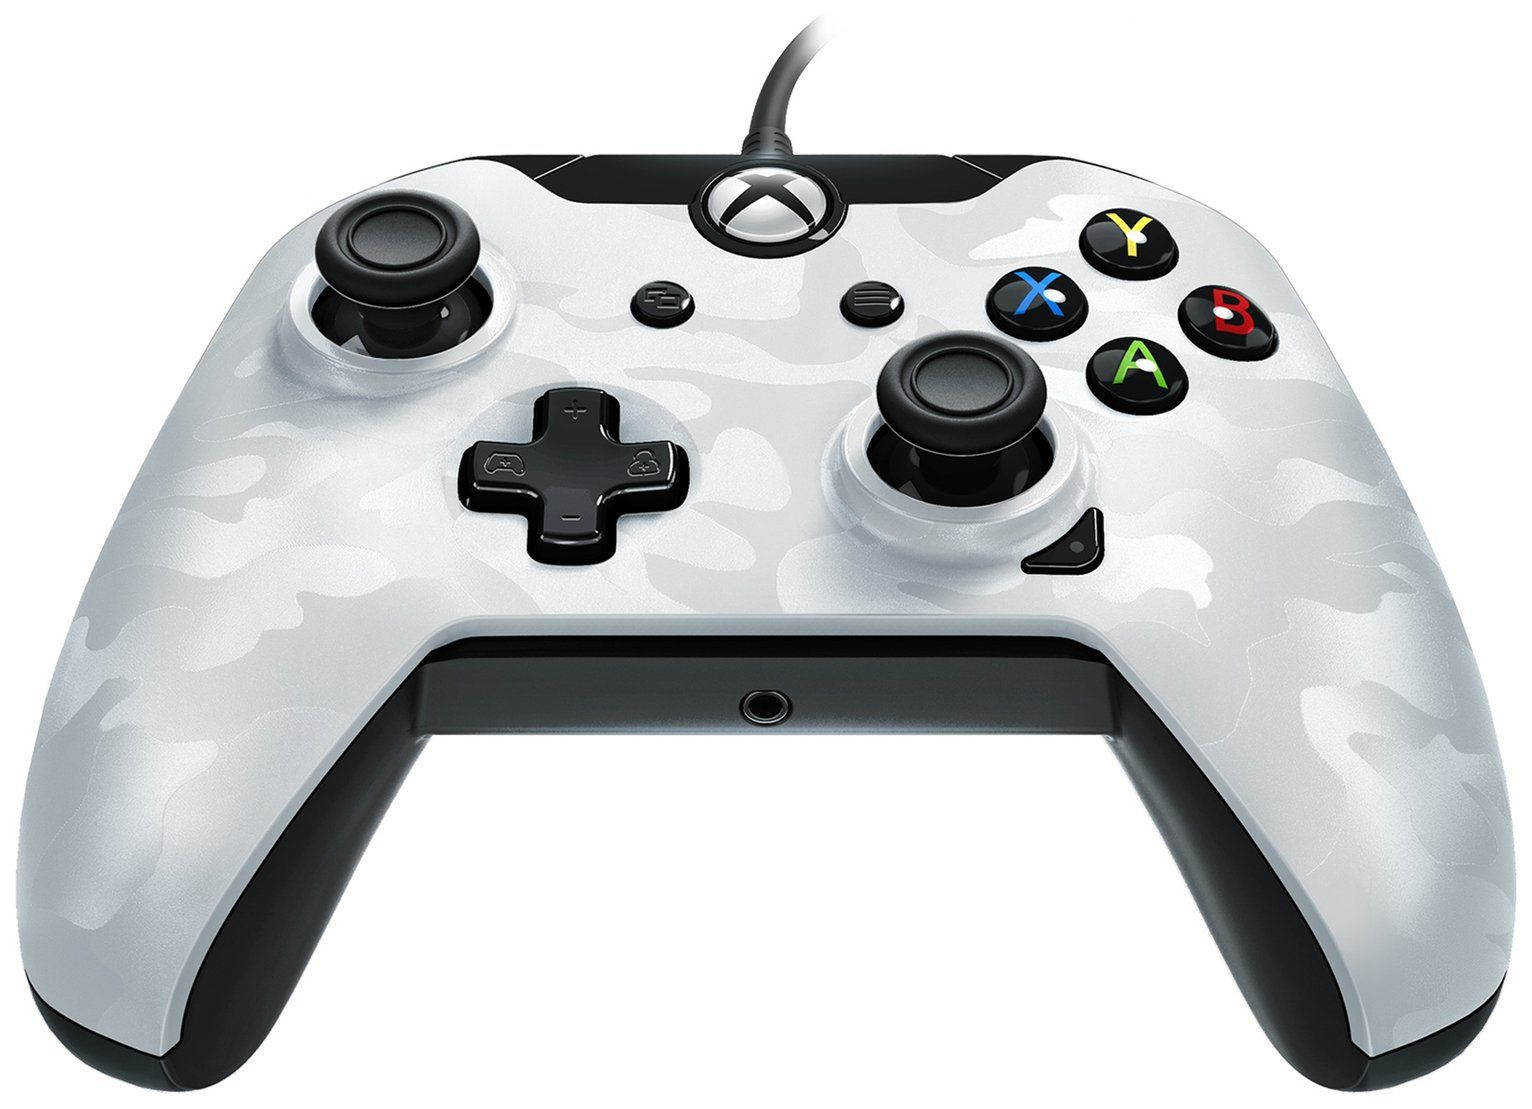 Pdp Camo Xbox One Controller White In 2020 Xbox One Controller Xbox One Xbox One White